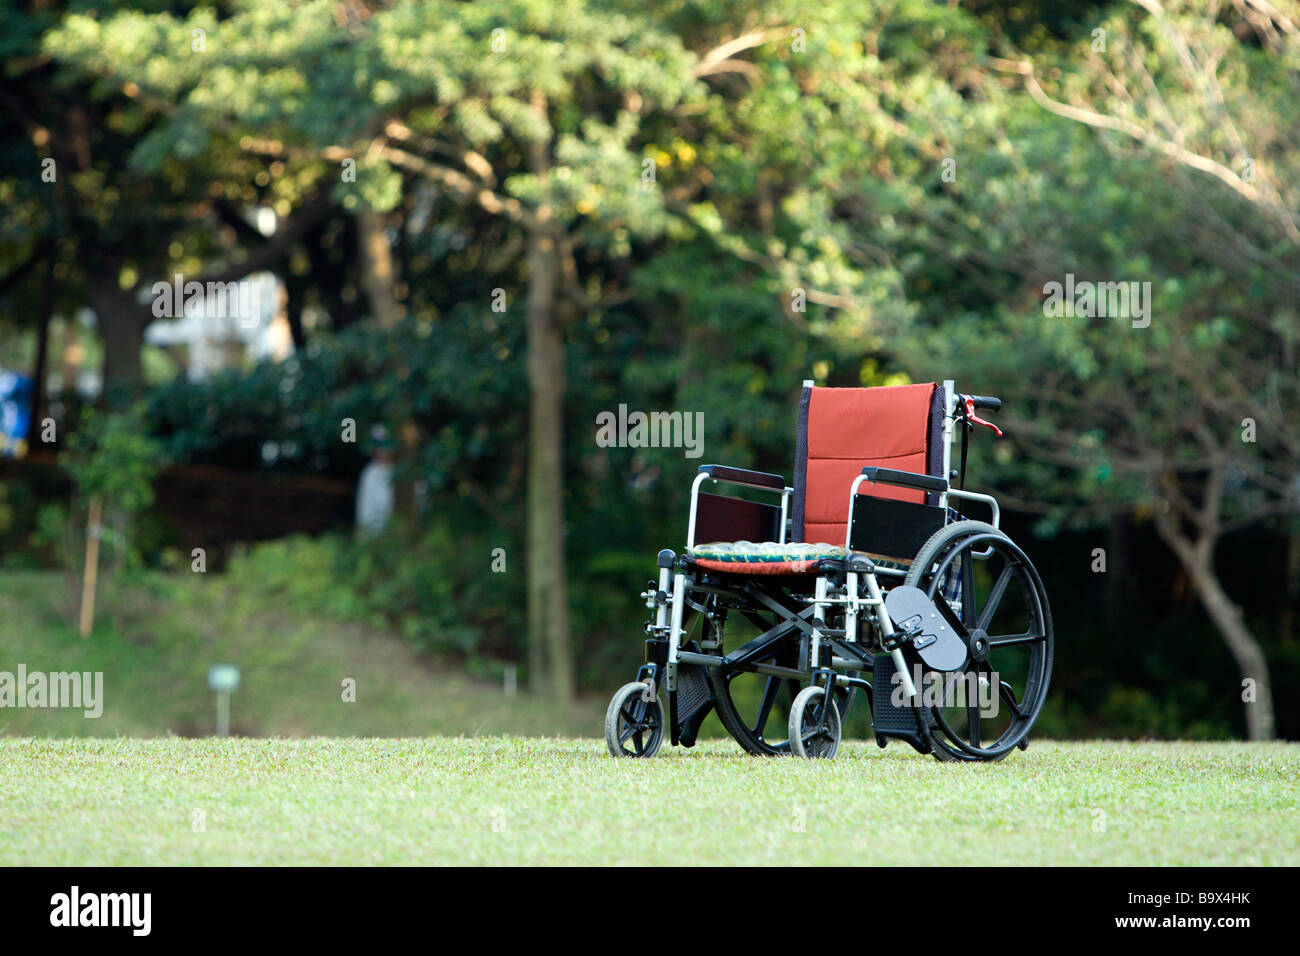 Empty wheelchair parked in park, health care concept, Taiwan Stock Photo